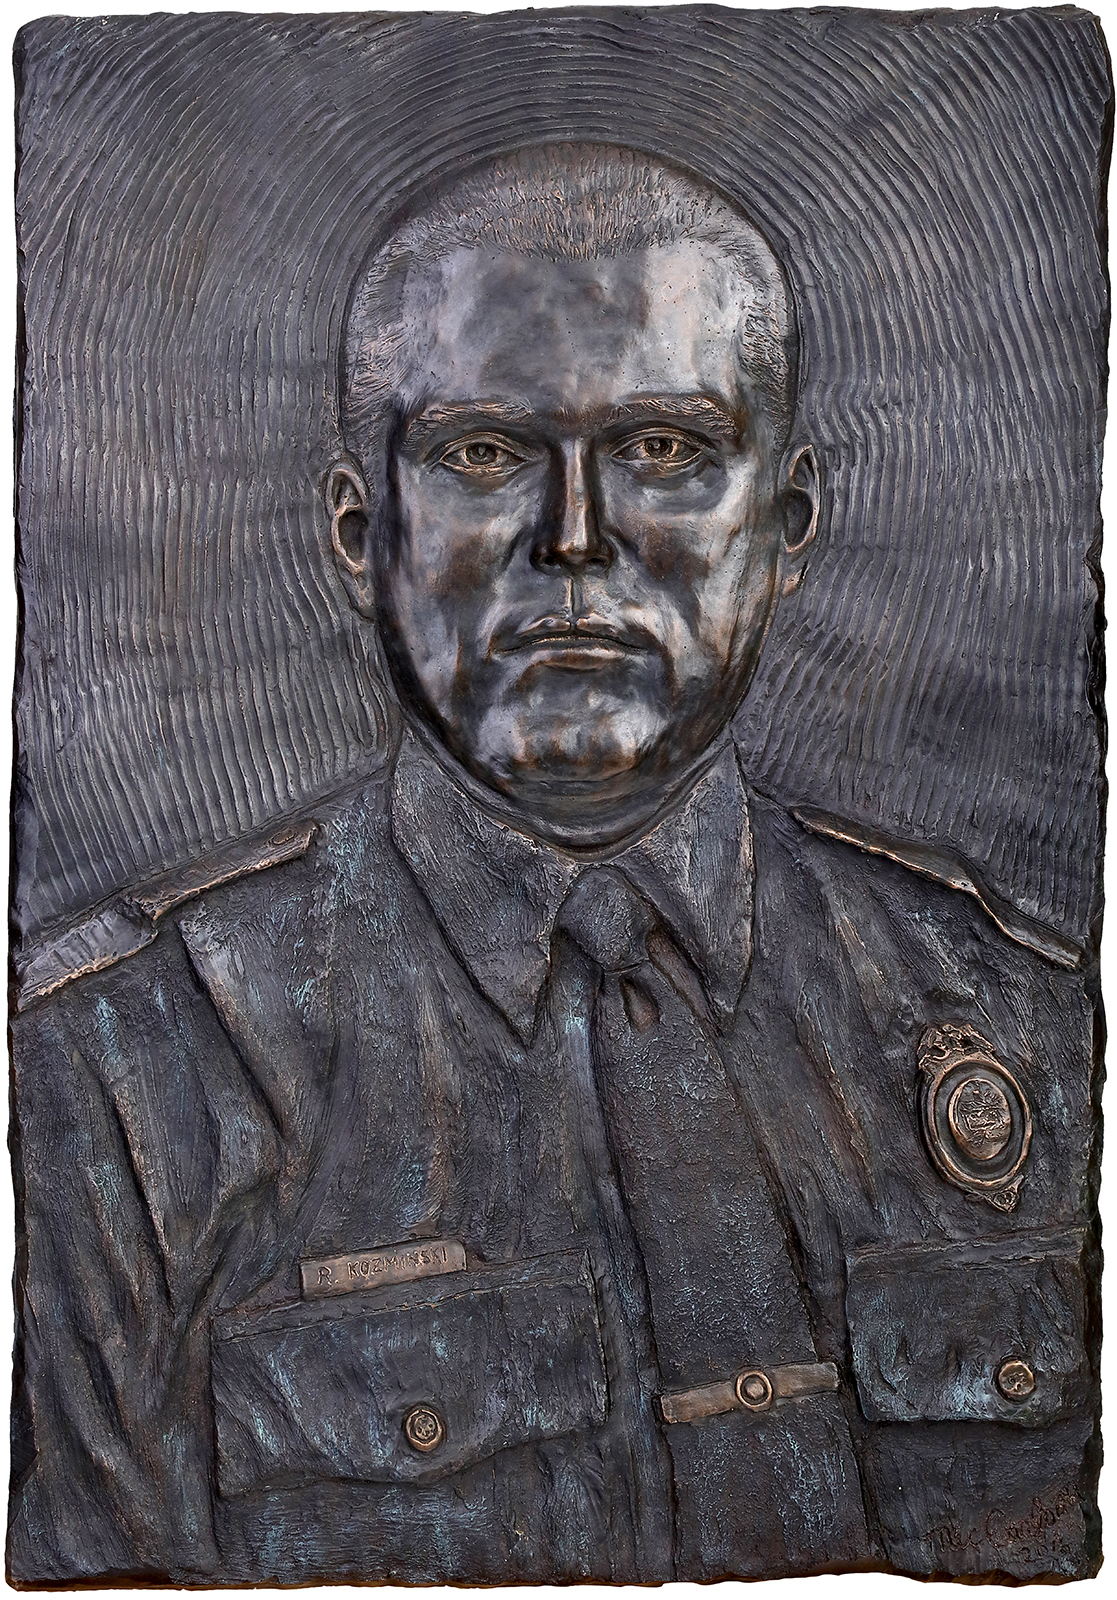 "Officer Robert Kozminski - Original 24"" x 30"" Bronze24"" x ""30 and 9"" x 12"" replicas hand made by Mic available to purchase please Call or email MicMemorial Location Richmond Park Grand Rapids, Michigan."